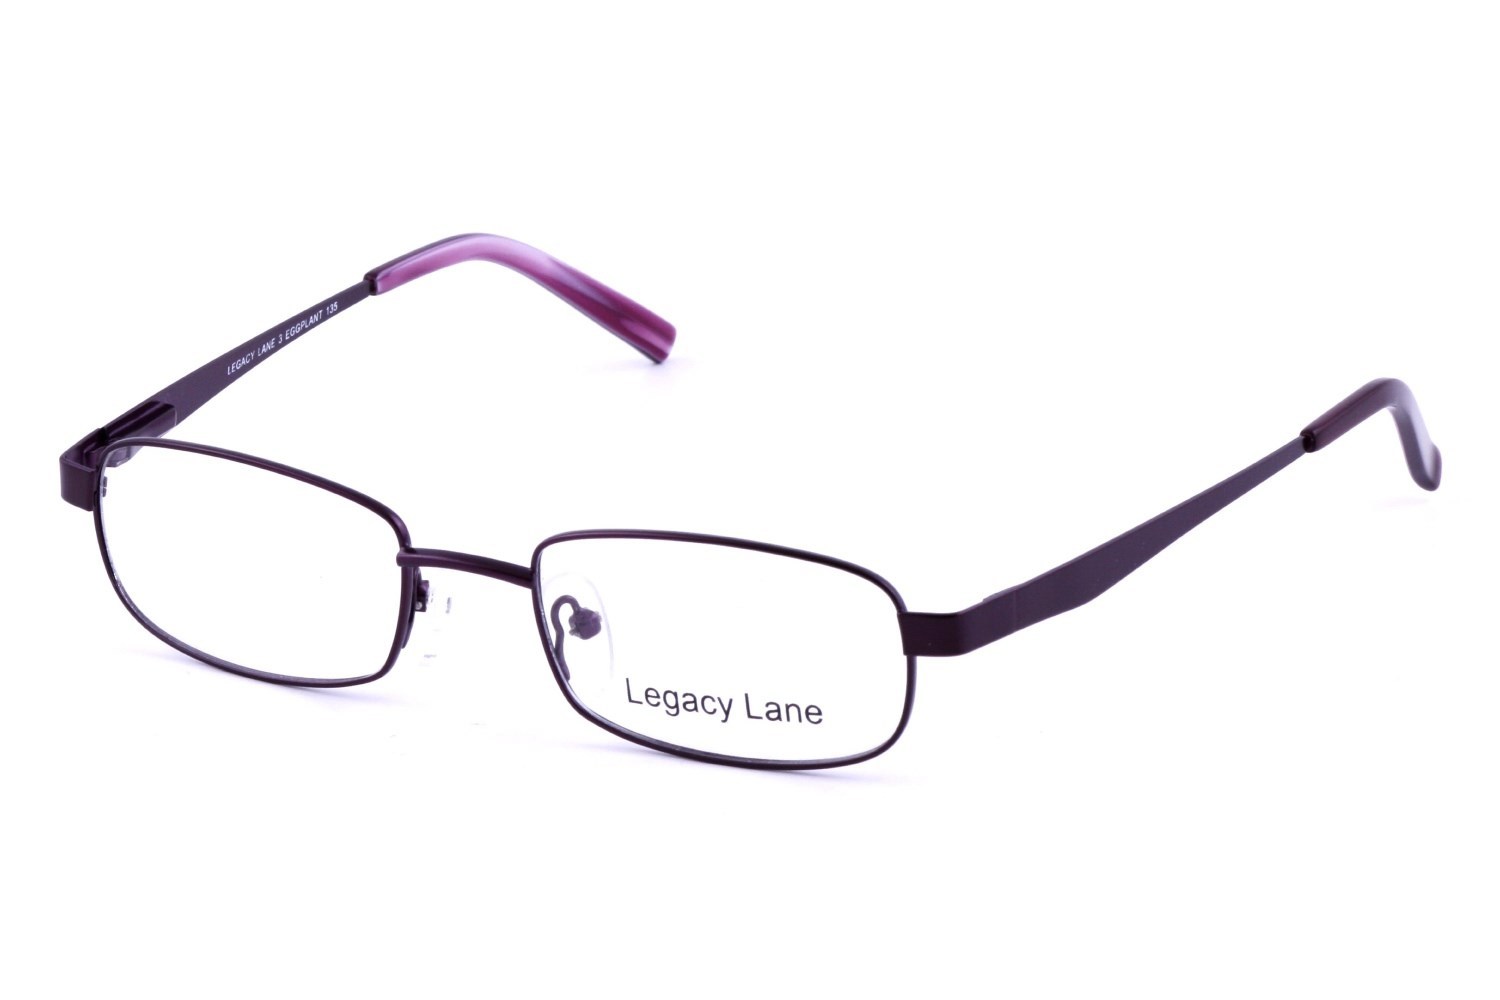 Legacy Lane 3 Prescription Eyeglasses Frames